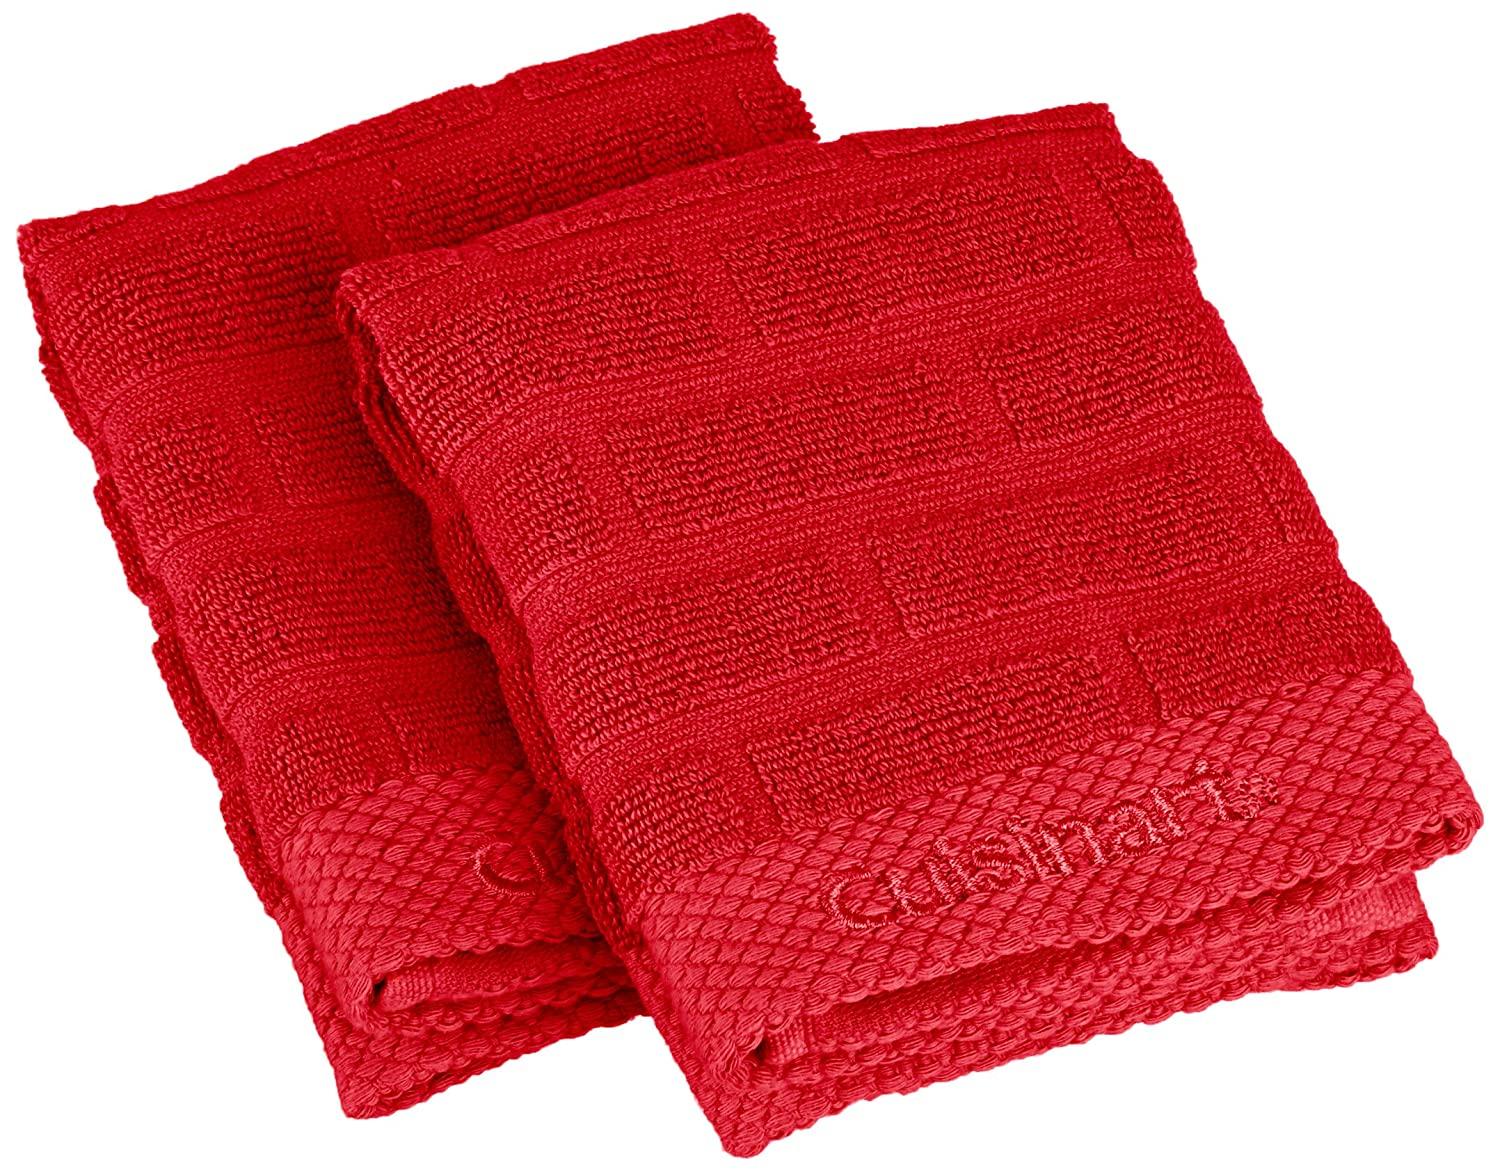 Cuisinart Terry Dish Cloth with Embroidery, Red, 2-Pack 142-9786-8